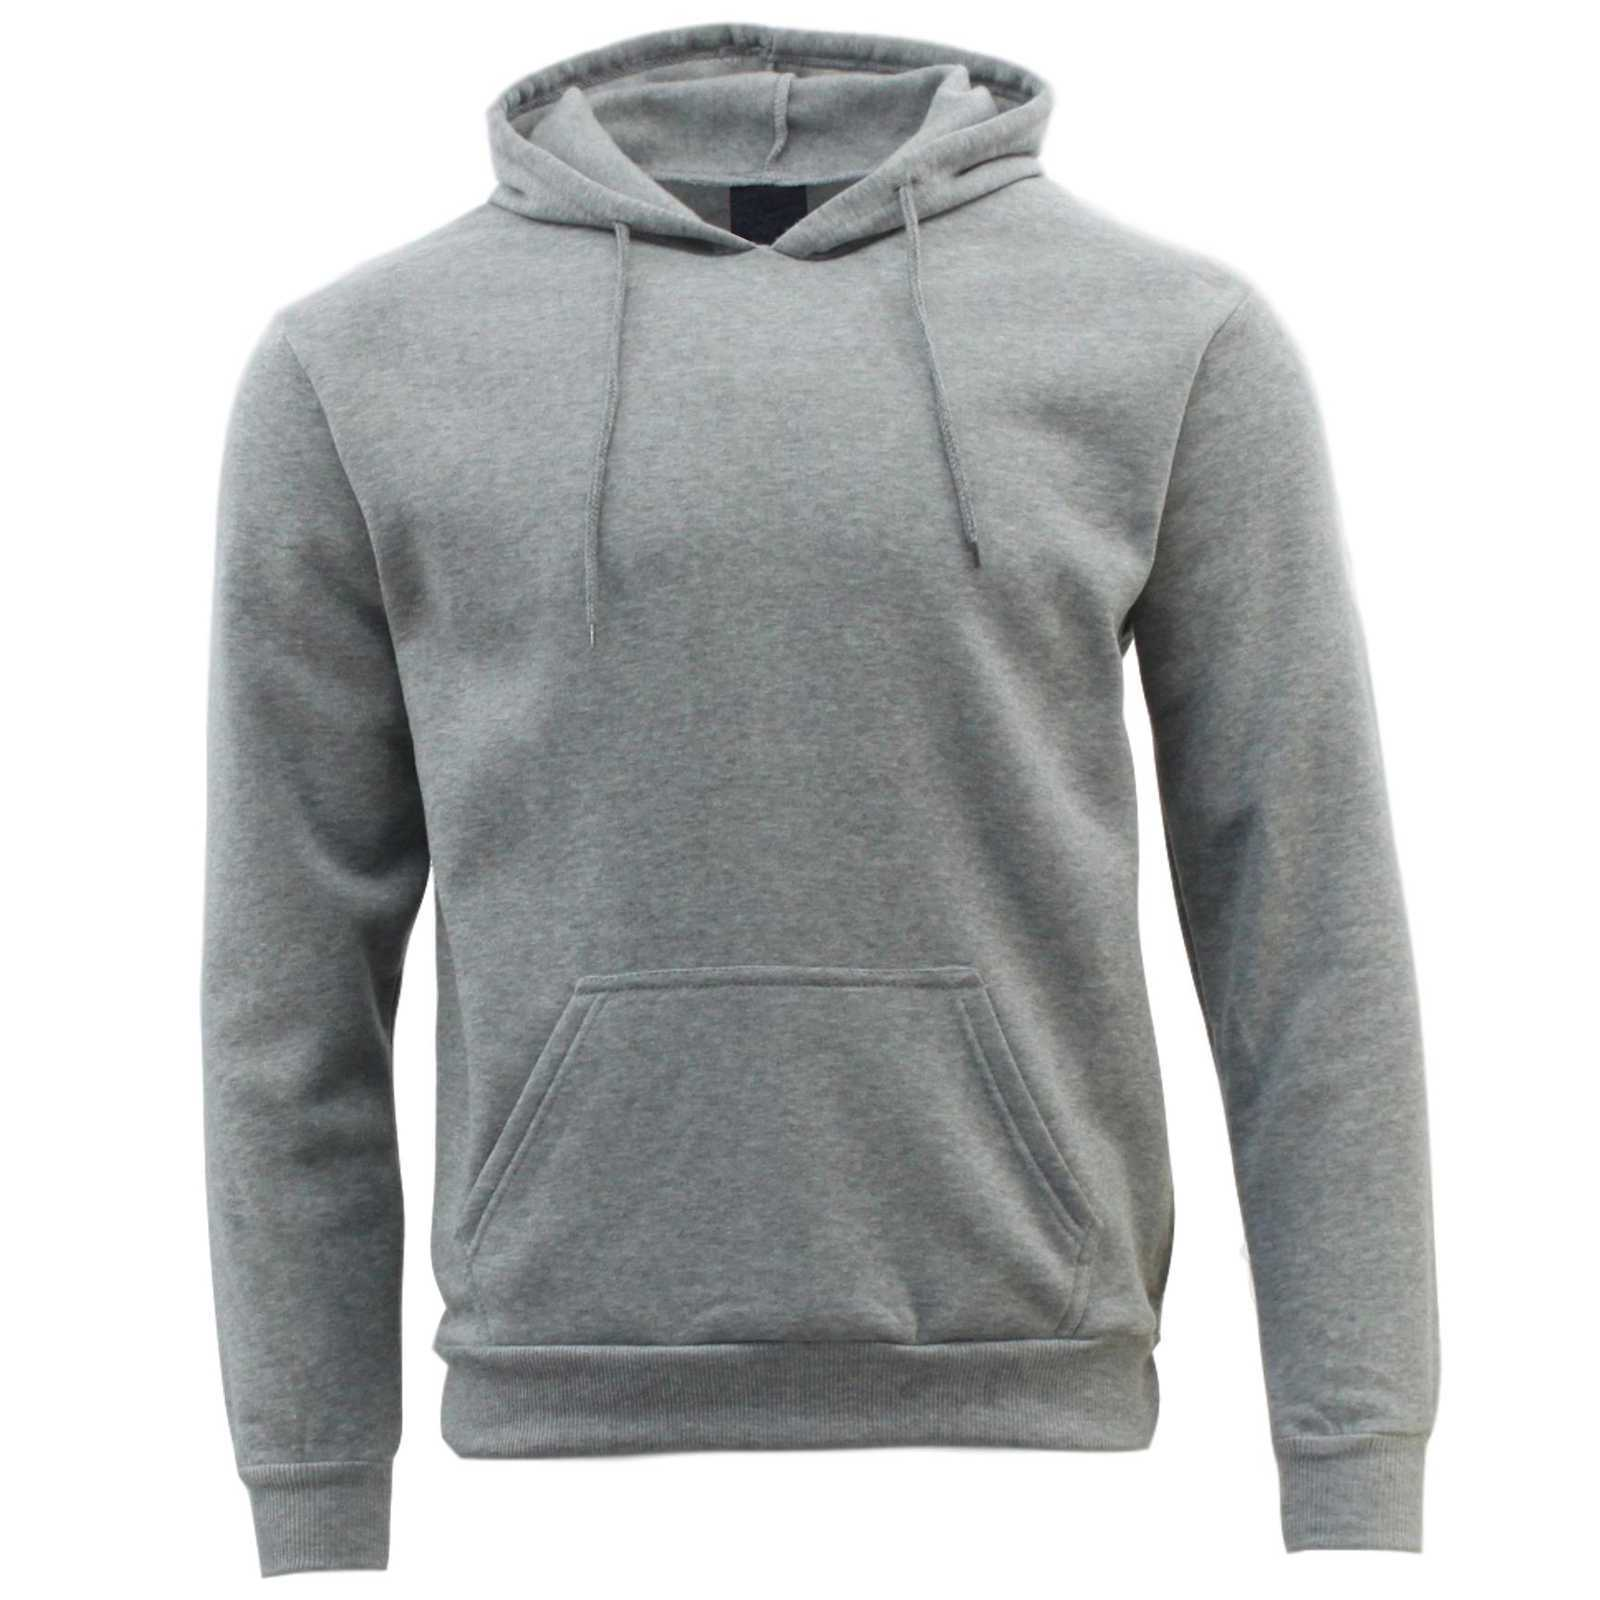 Adult-Men-039-s-Unisex-Basic-Plain-Hoodie-Jumper-Pullover-Sweater-Sweatshirt-XS-5XL thumbnail 44